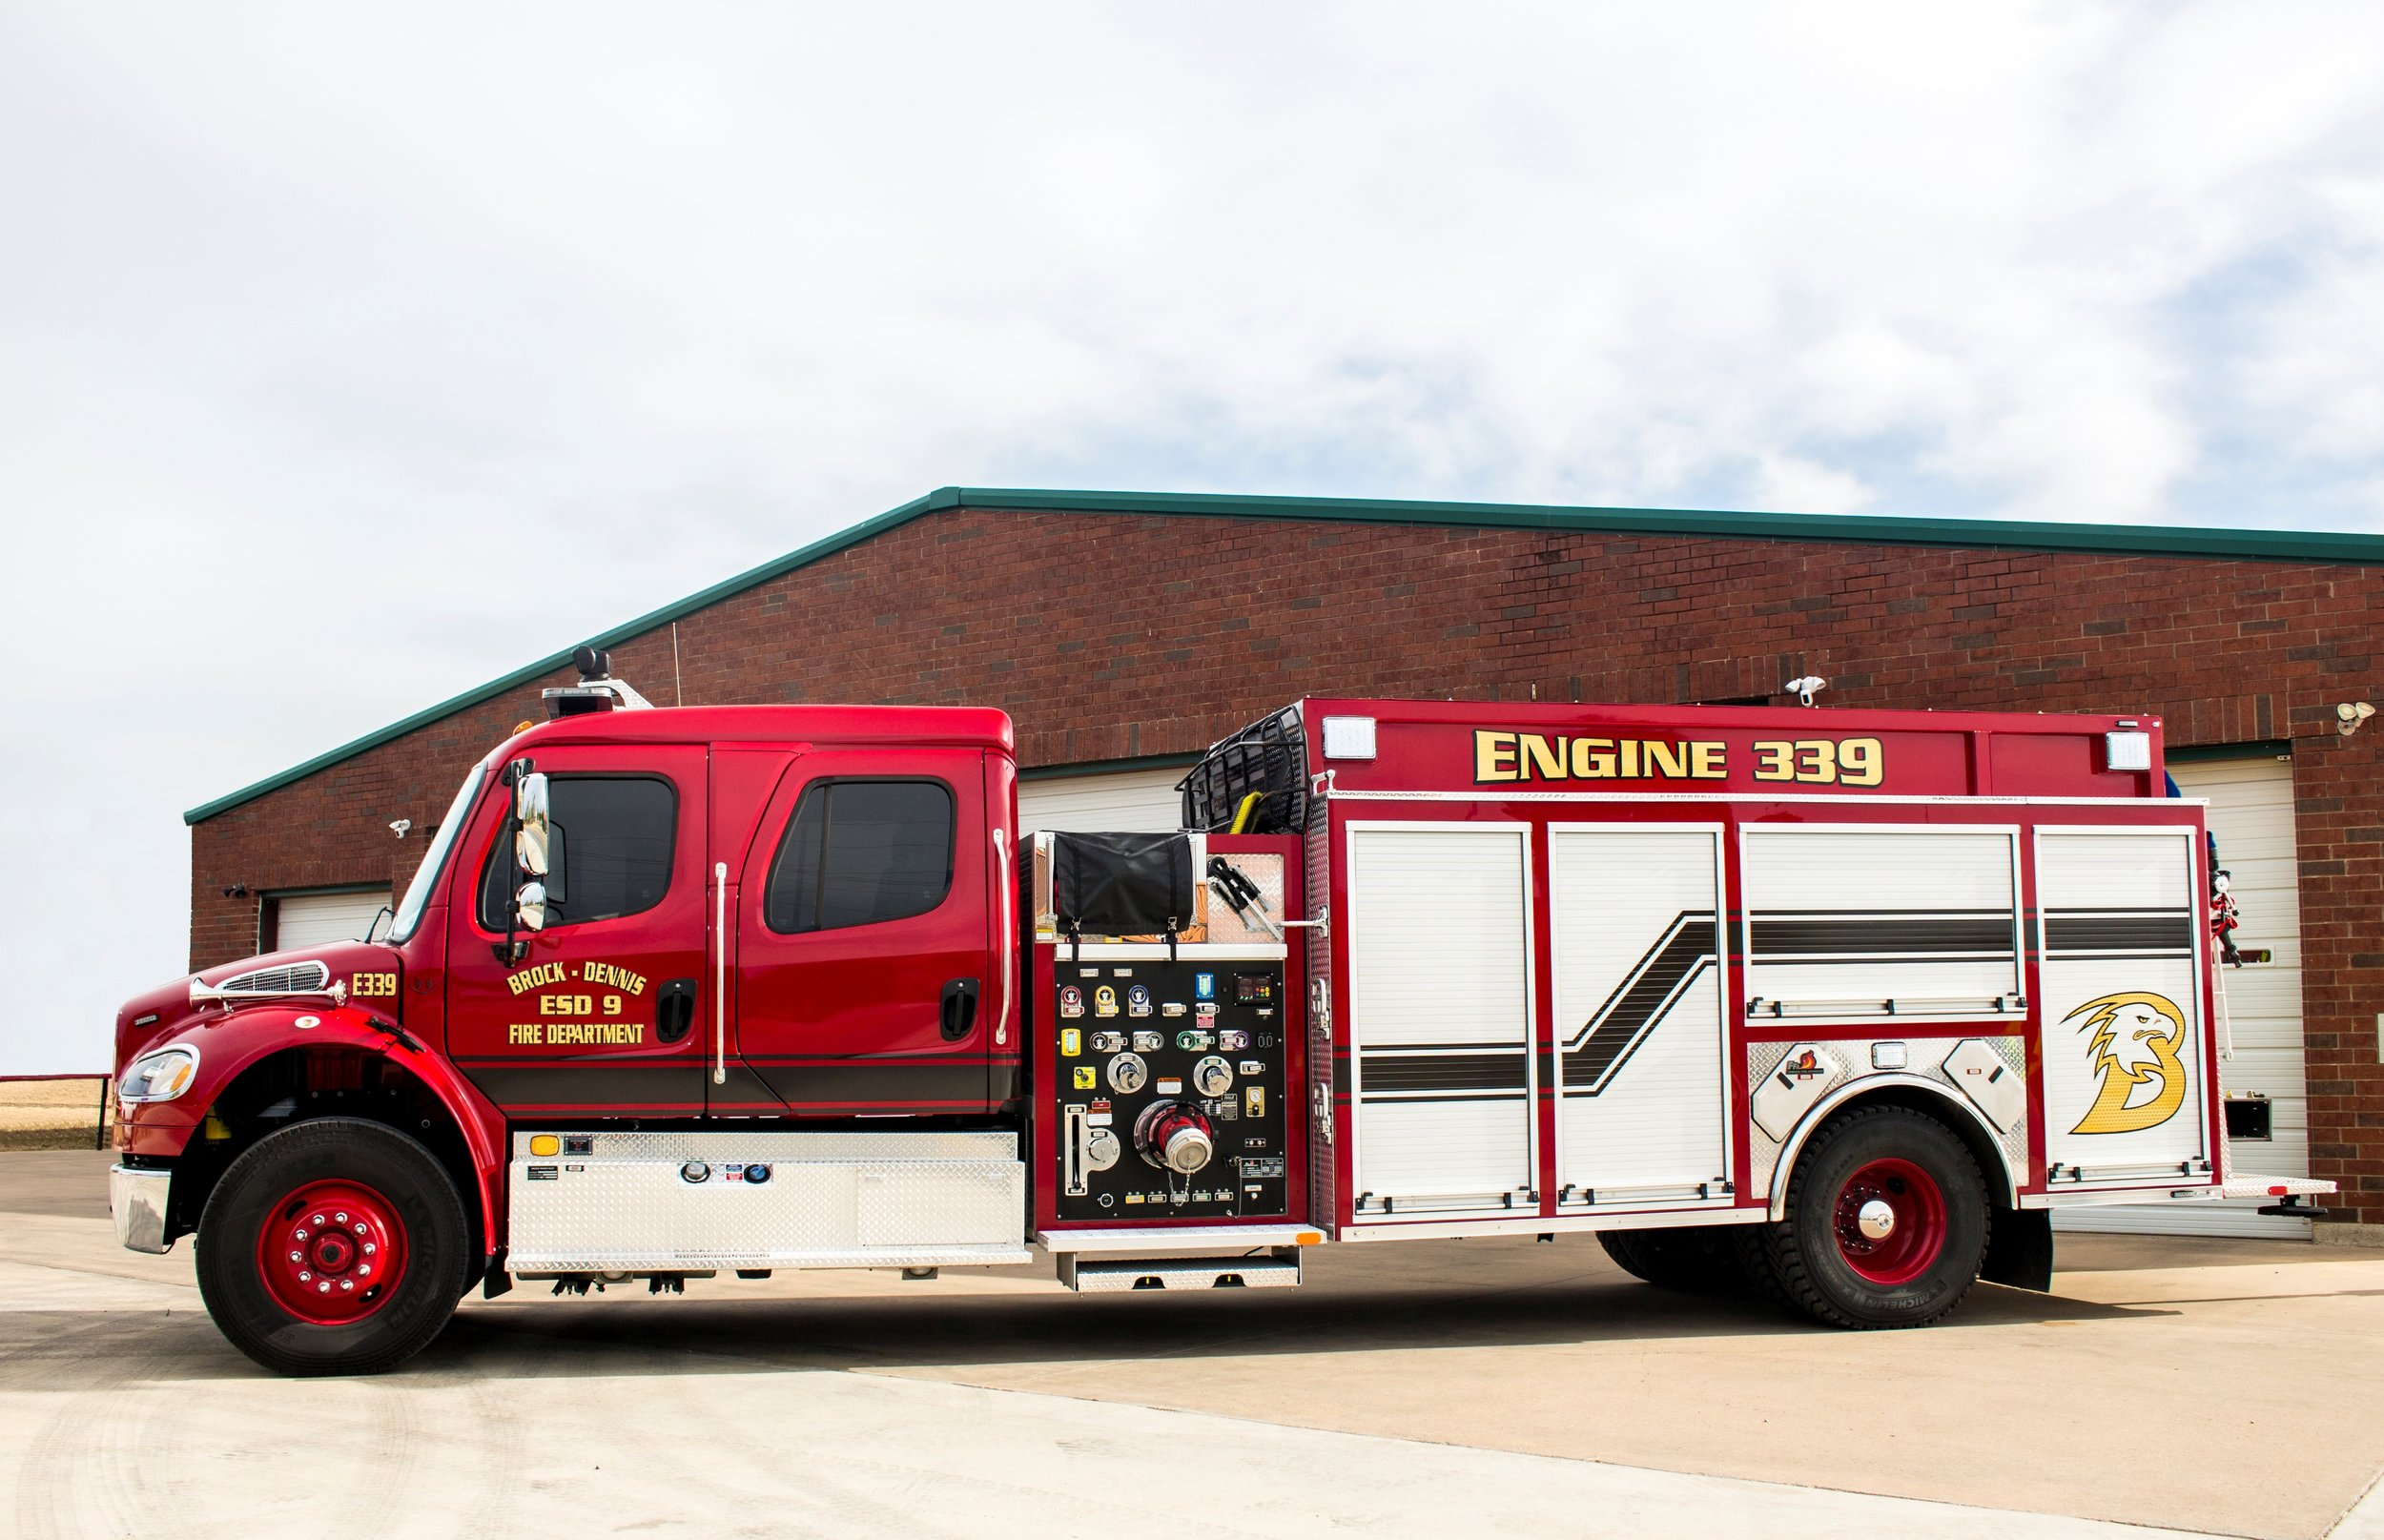 E339 - This 2017 Freightliner built by Ferrara Fire apparatus carries up to 1800 gallons of water partnered with a 2000 GPM pump. This loaded out engine served its first couple of years as the departments first out truck taking some of the load off of E239 while carrying up to 5 firemen.